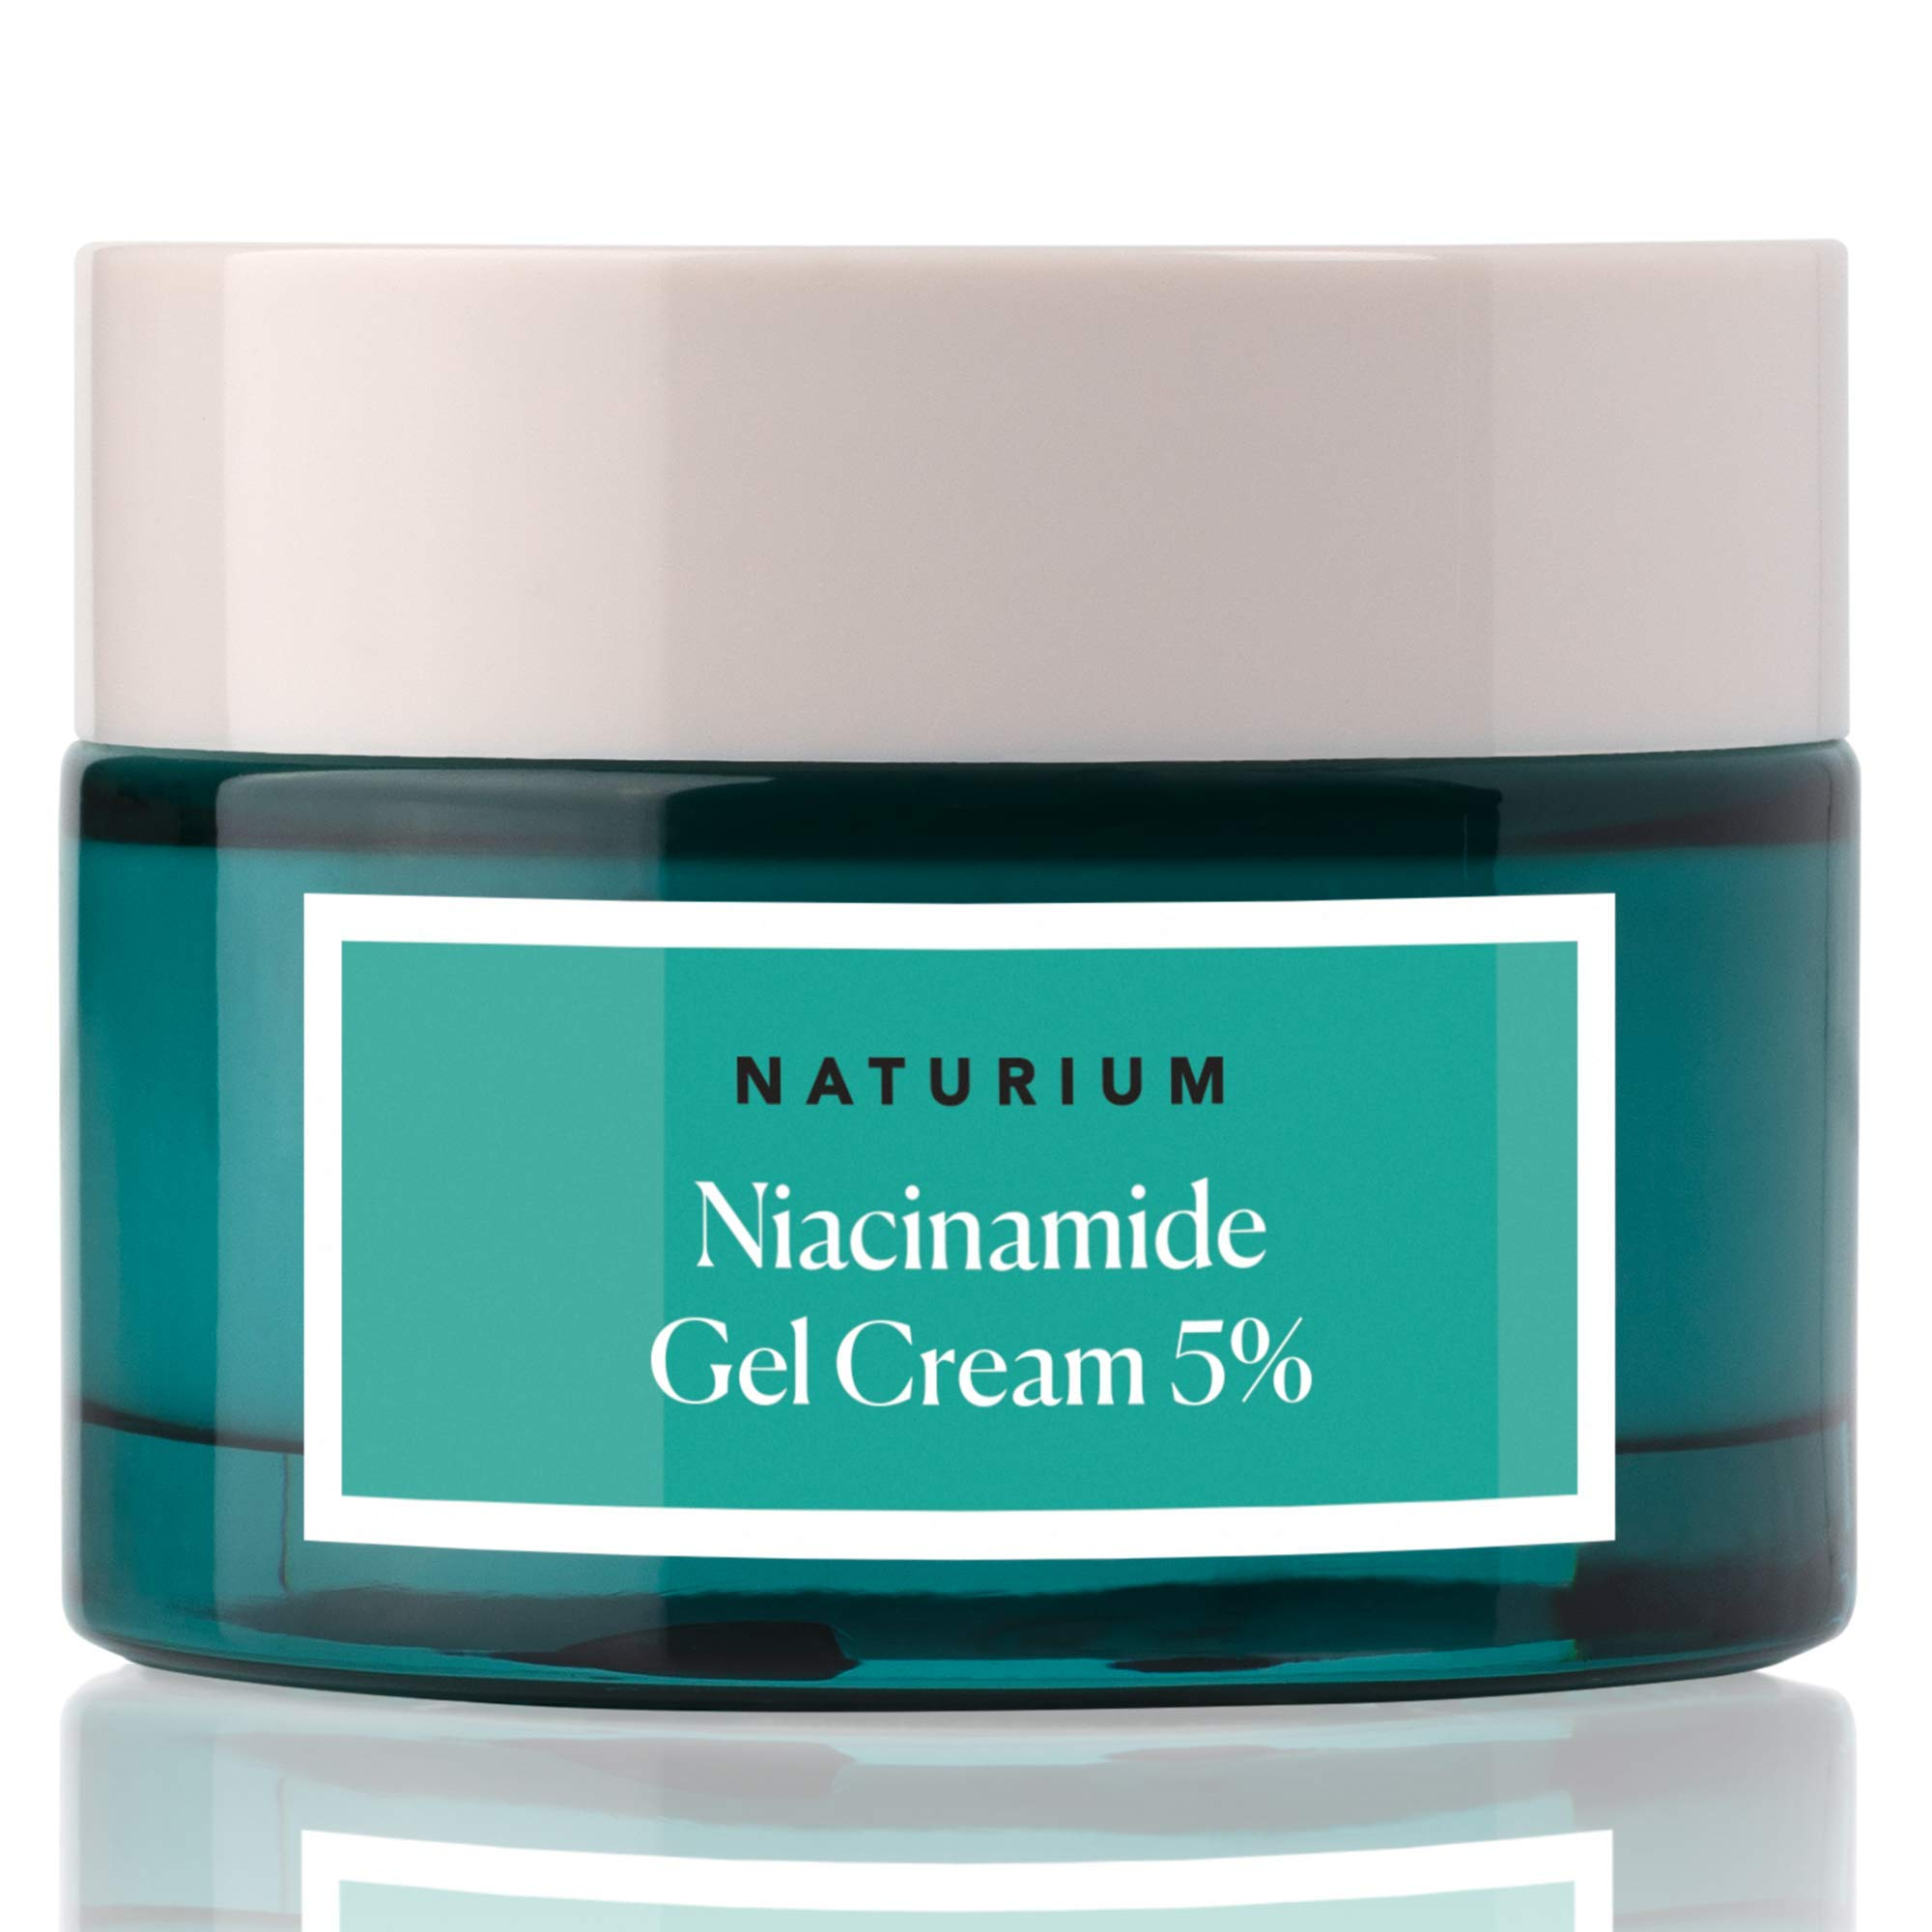 Niacinamide Gel Cream 5% - 1.7oz from Naturium